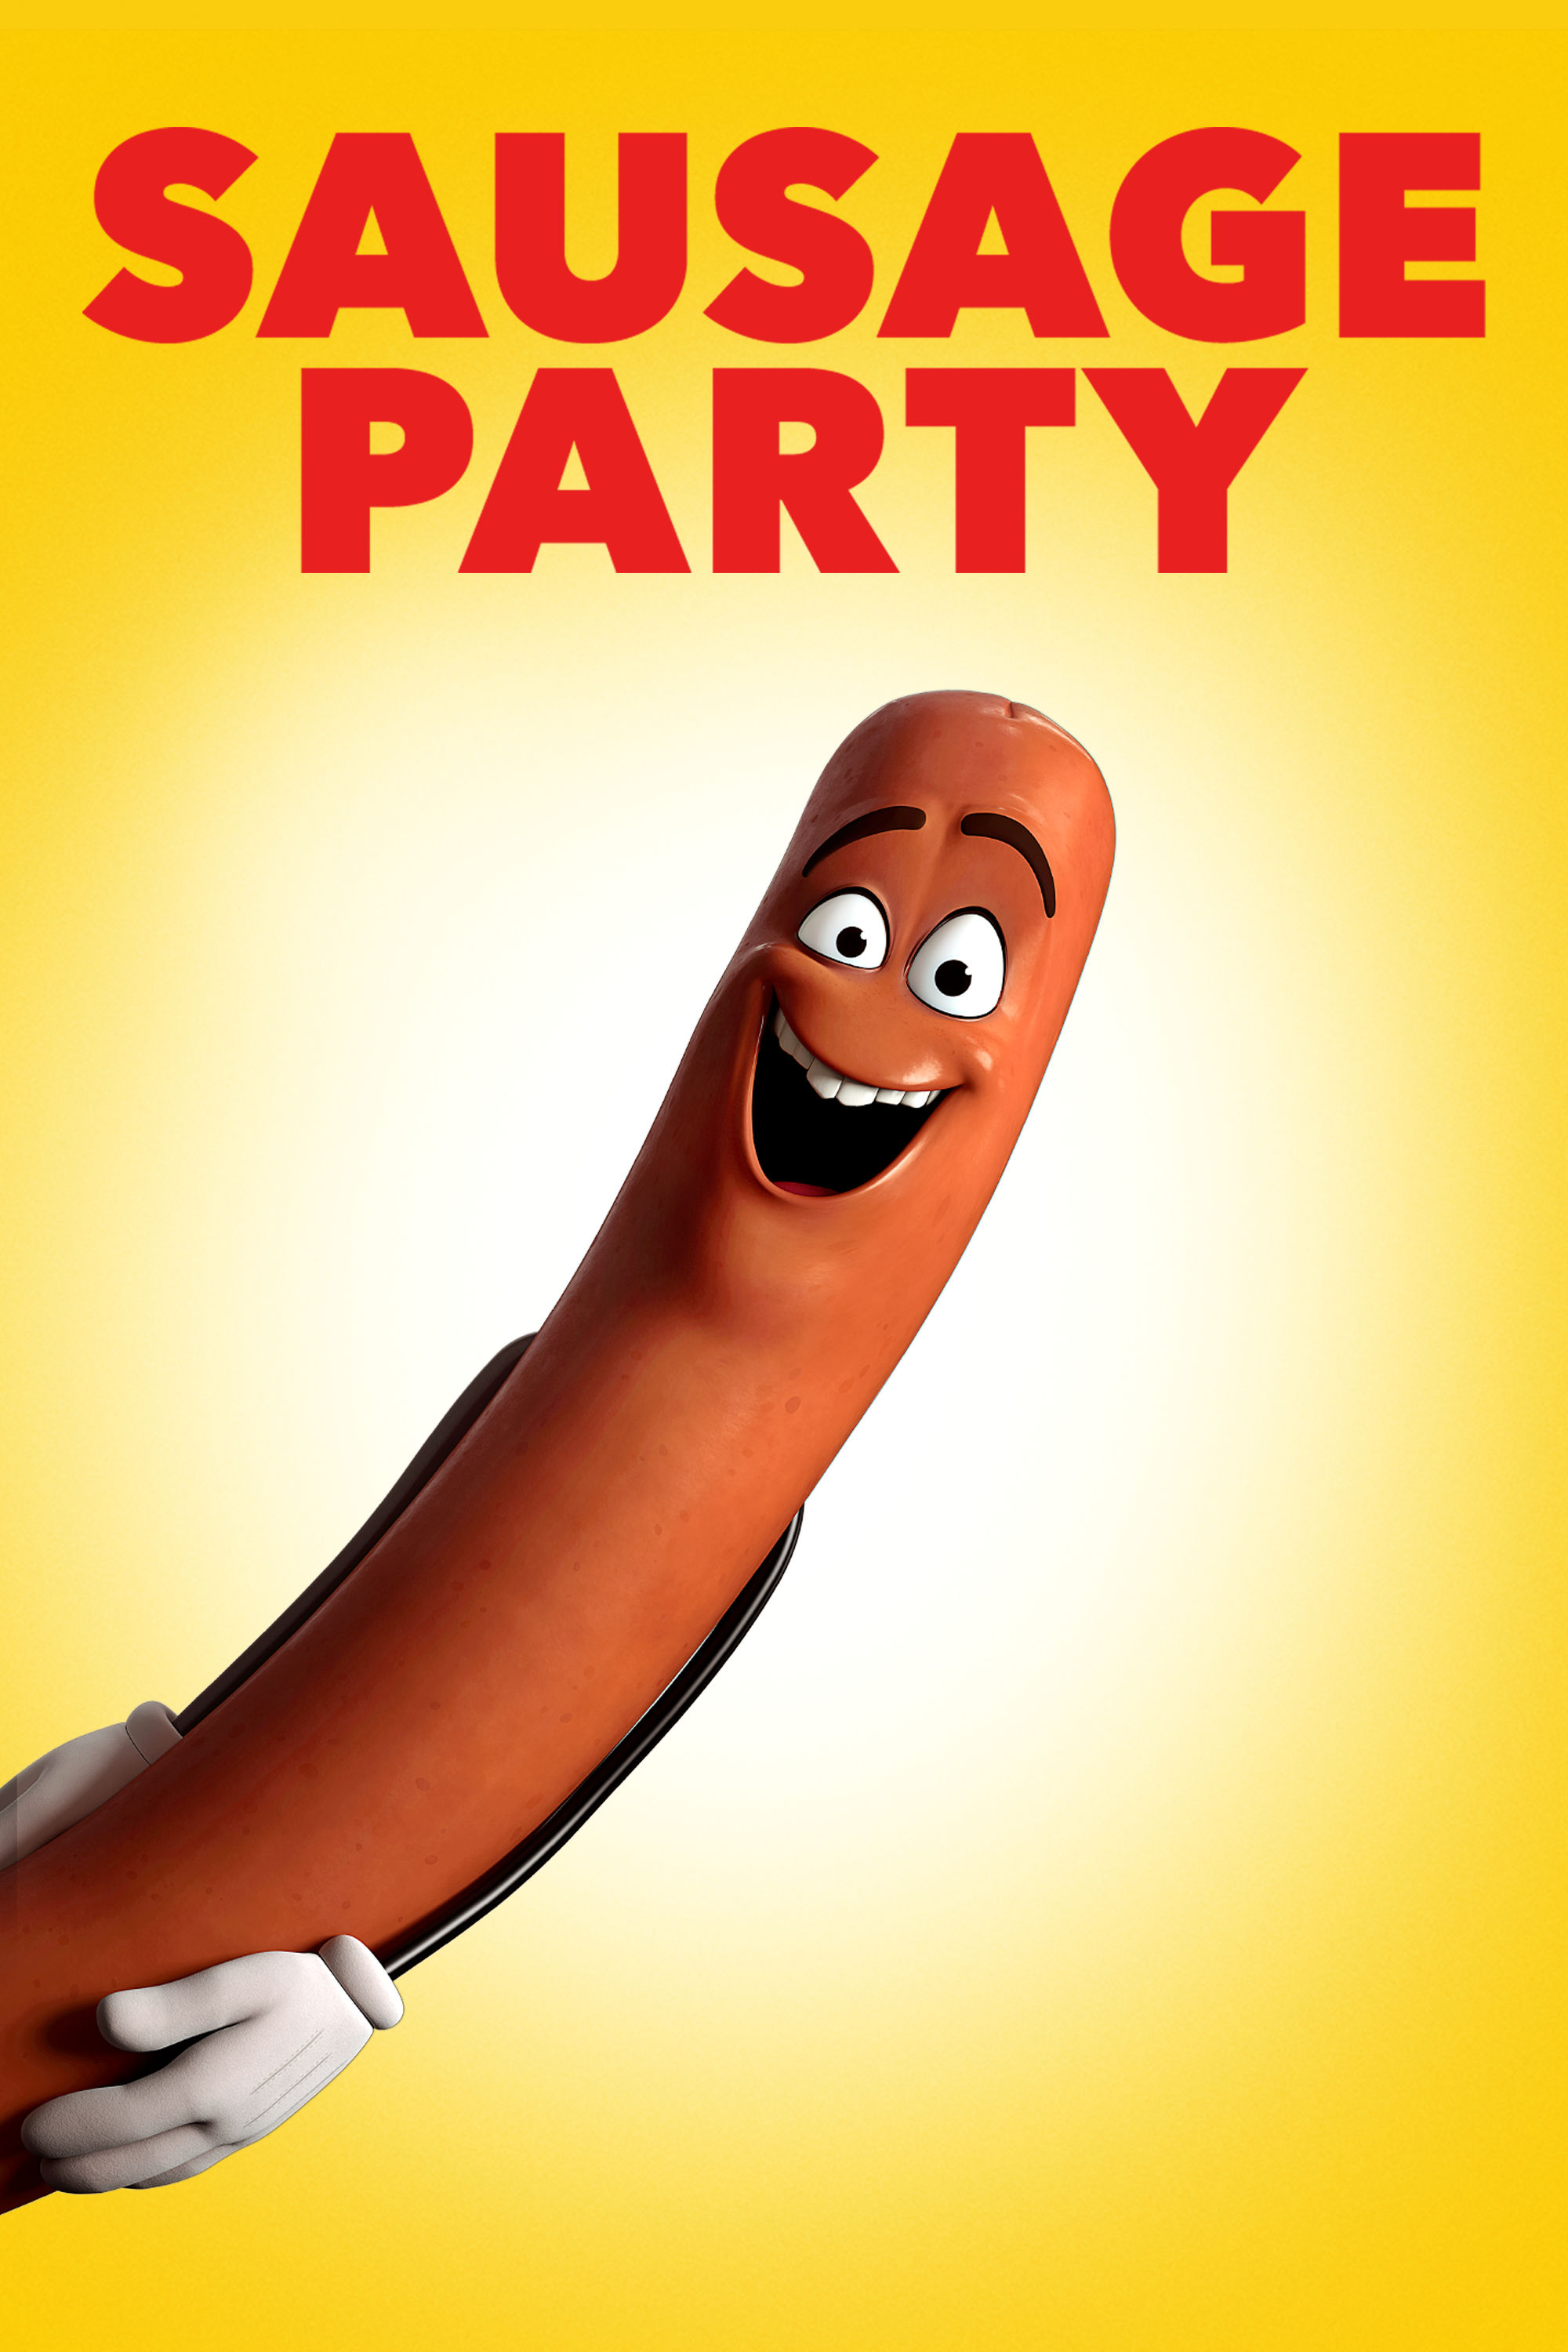 Chips clipart sausage. Party transcripts wiki fandom